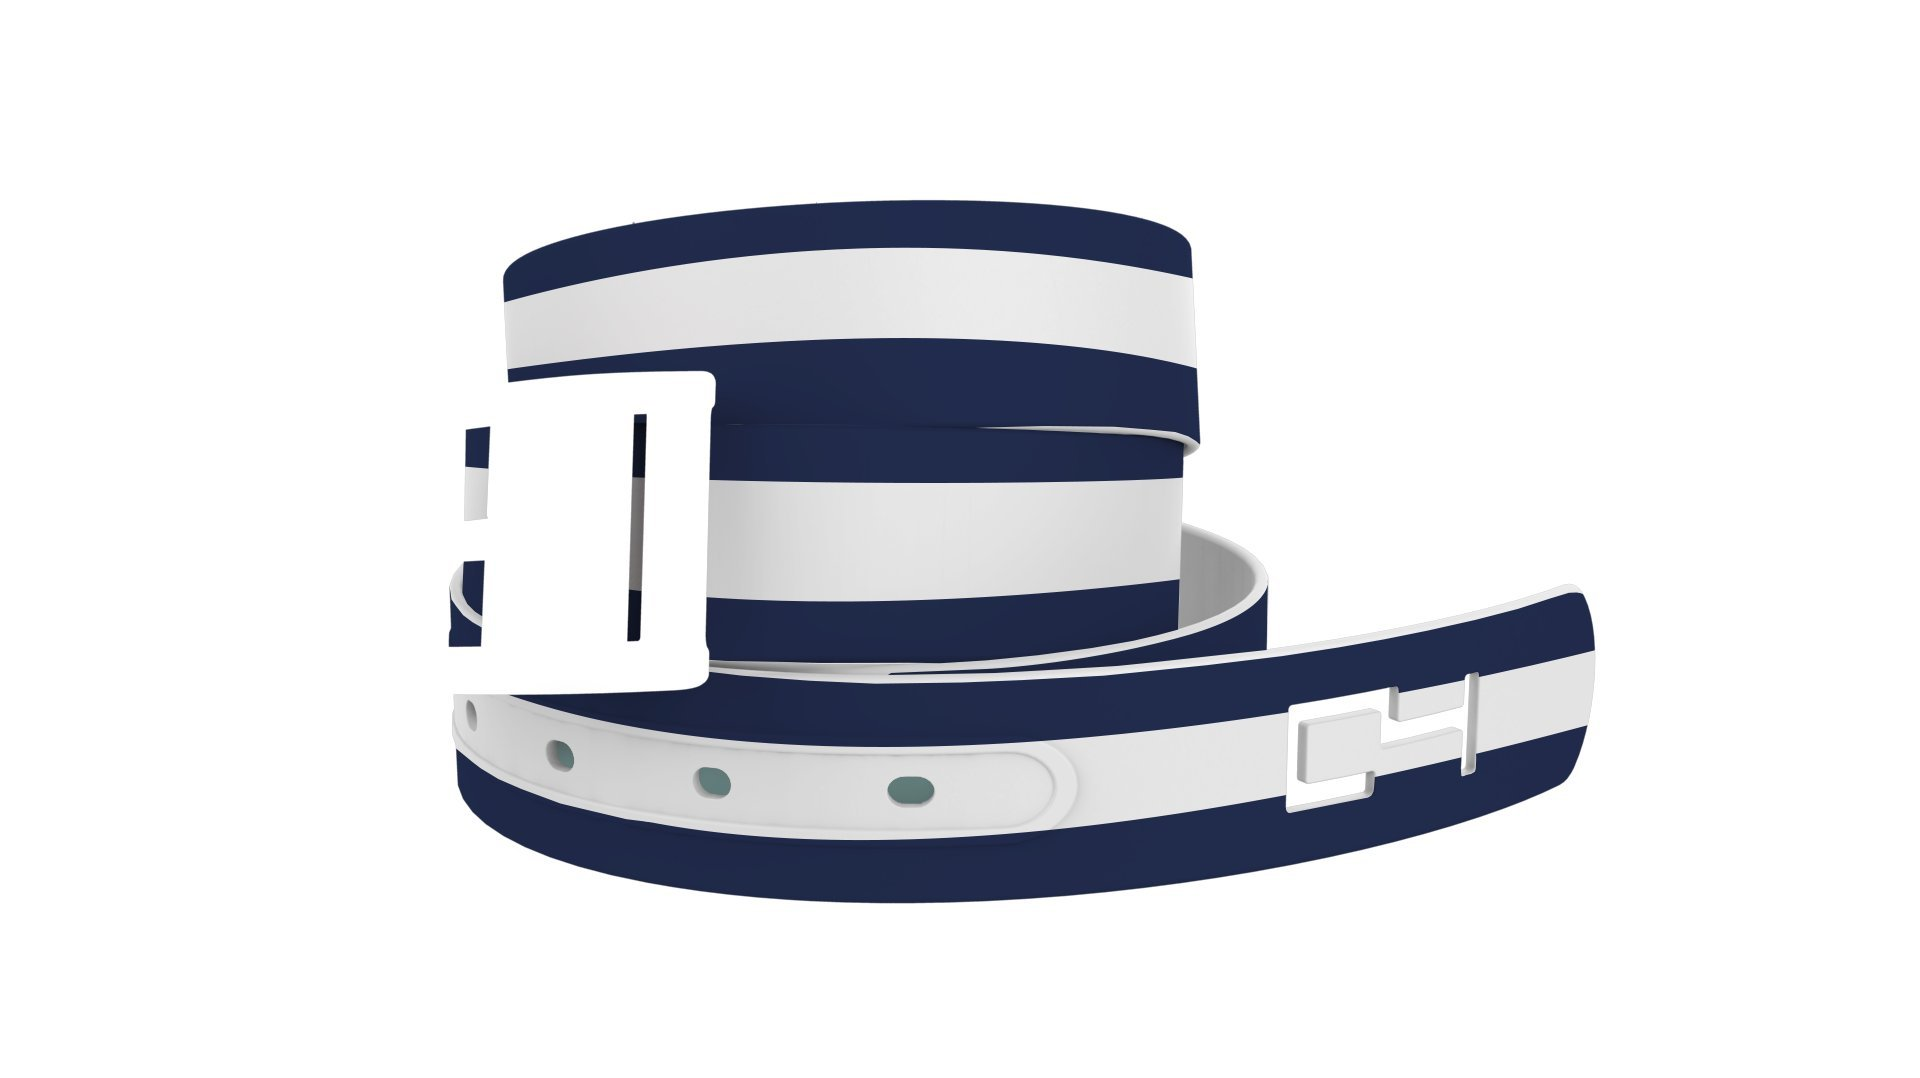 C4 Design Belt: Stripe White/Navy Strap/Navy Buckle - Fashion Belt - Waist Belt for Women and Men by C4 Belts (Image #2)